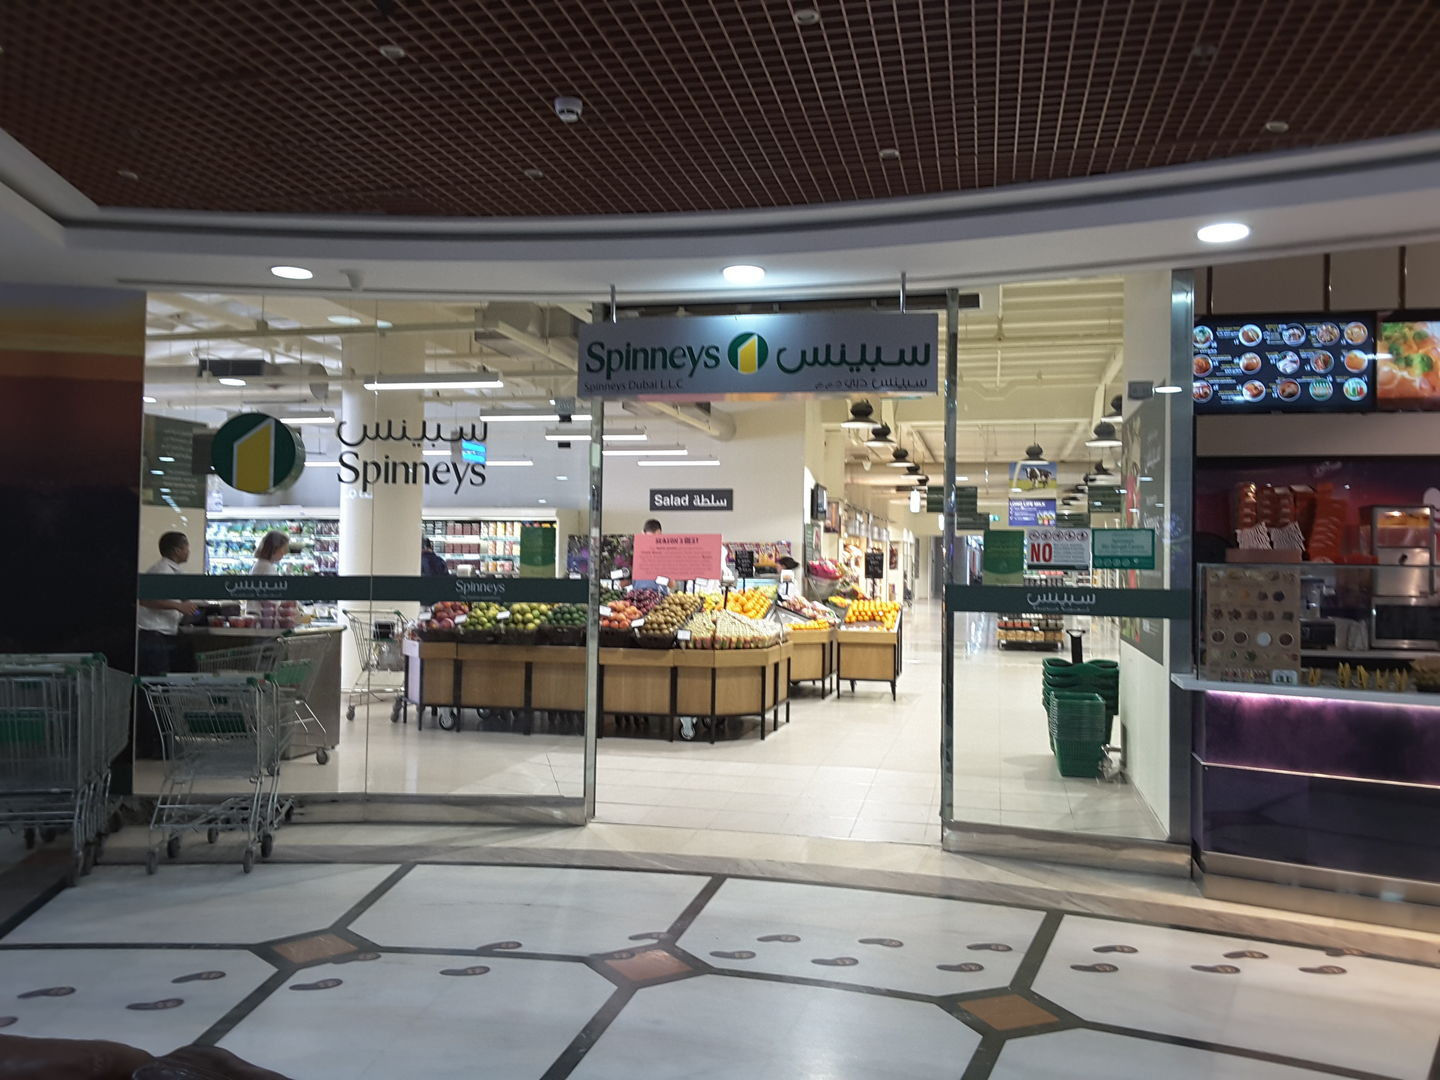 HiDubai-business-spinneys-shopping-supermarkets-hypermarkets-grocery-stores-al-rashidiya-dubai-2